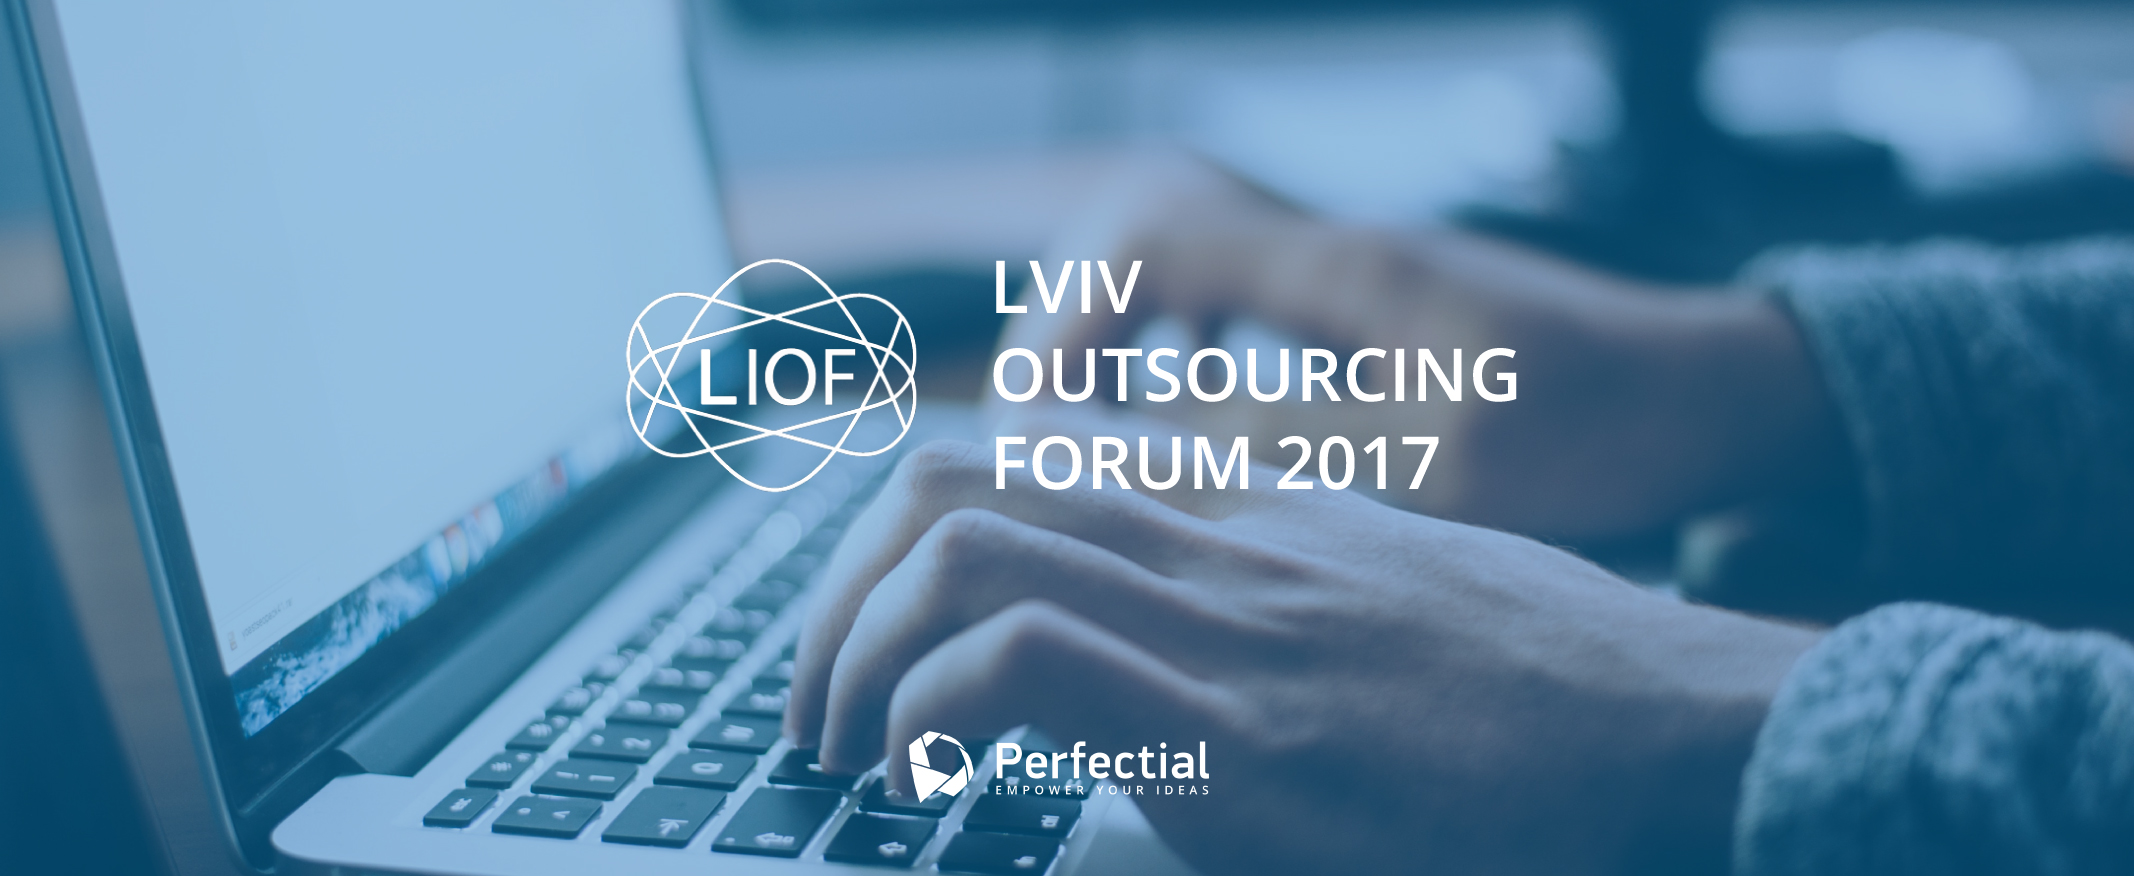 Perfectial Joins Lviv Outsourcing Forum for a Tour and a Talk with the CEO